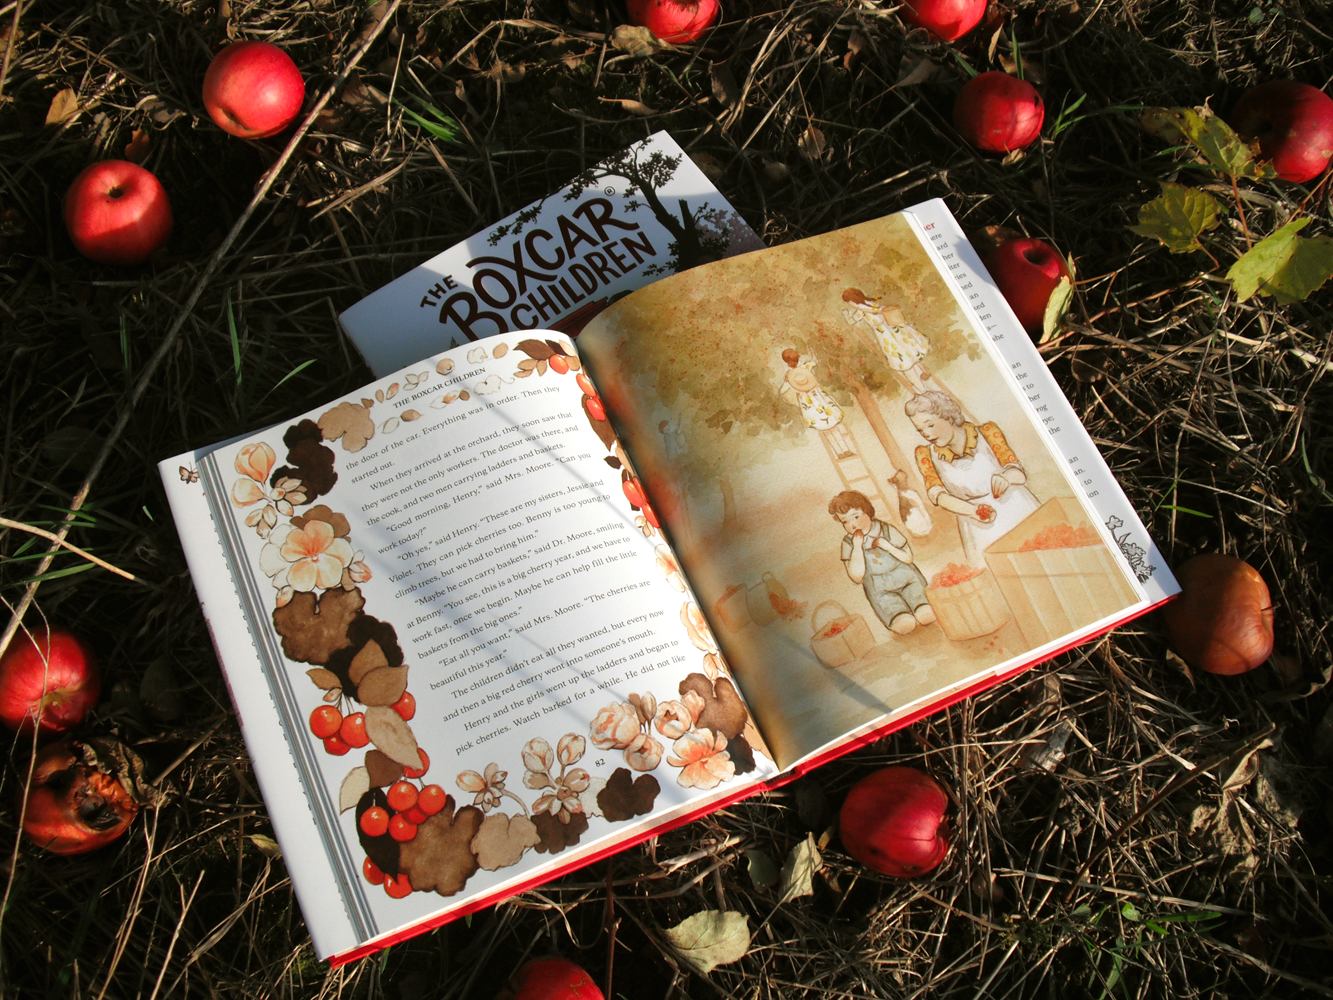 Boxcar-children-book-release-orchard-3.png